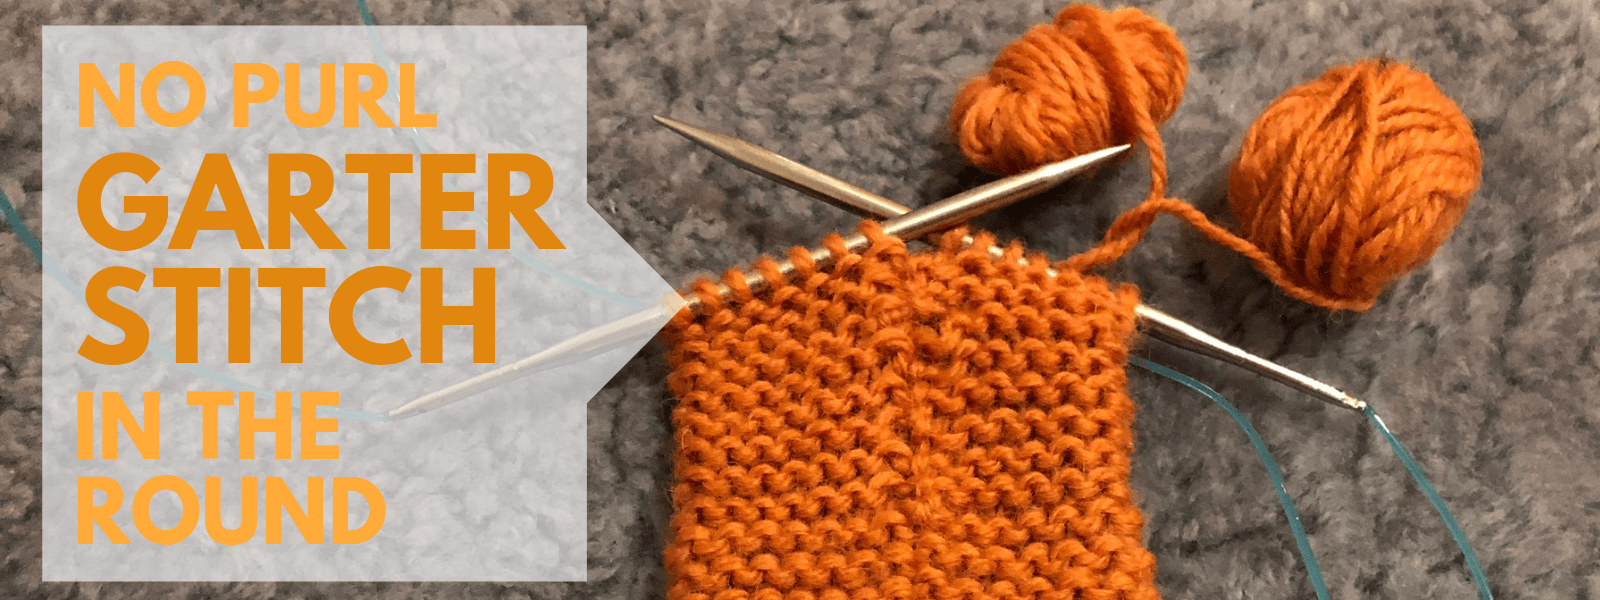 Don't Be Such a Square | Learn how to knit circular garter stitch without purl stitches | Ho to do a no purl garter stitch in the round | Two strand garter stitch